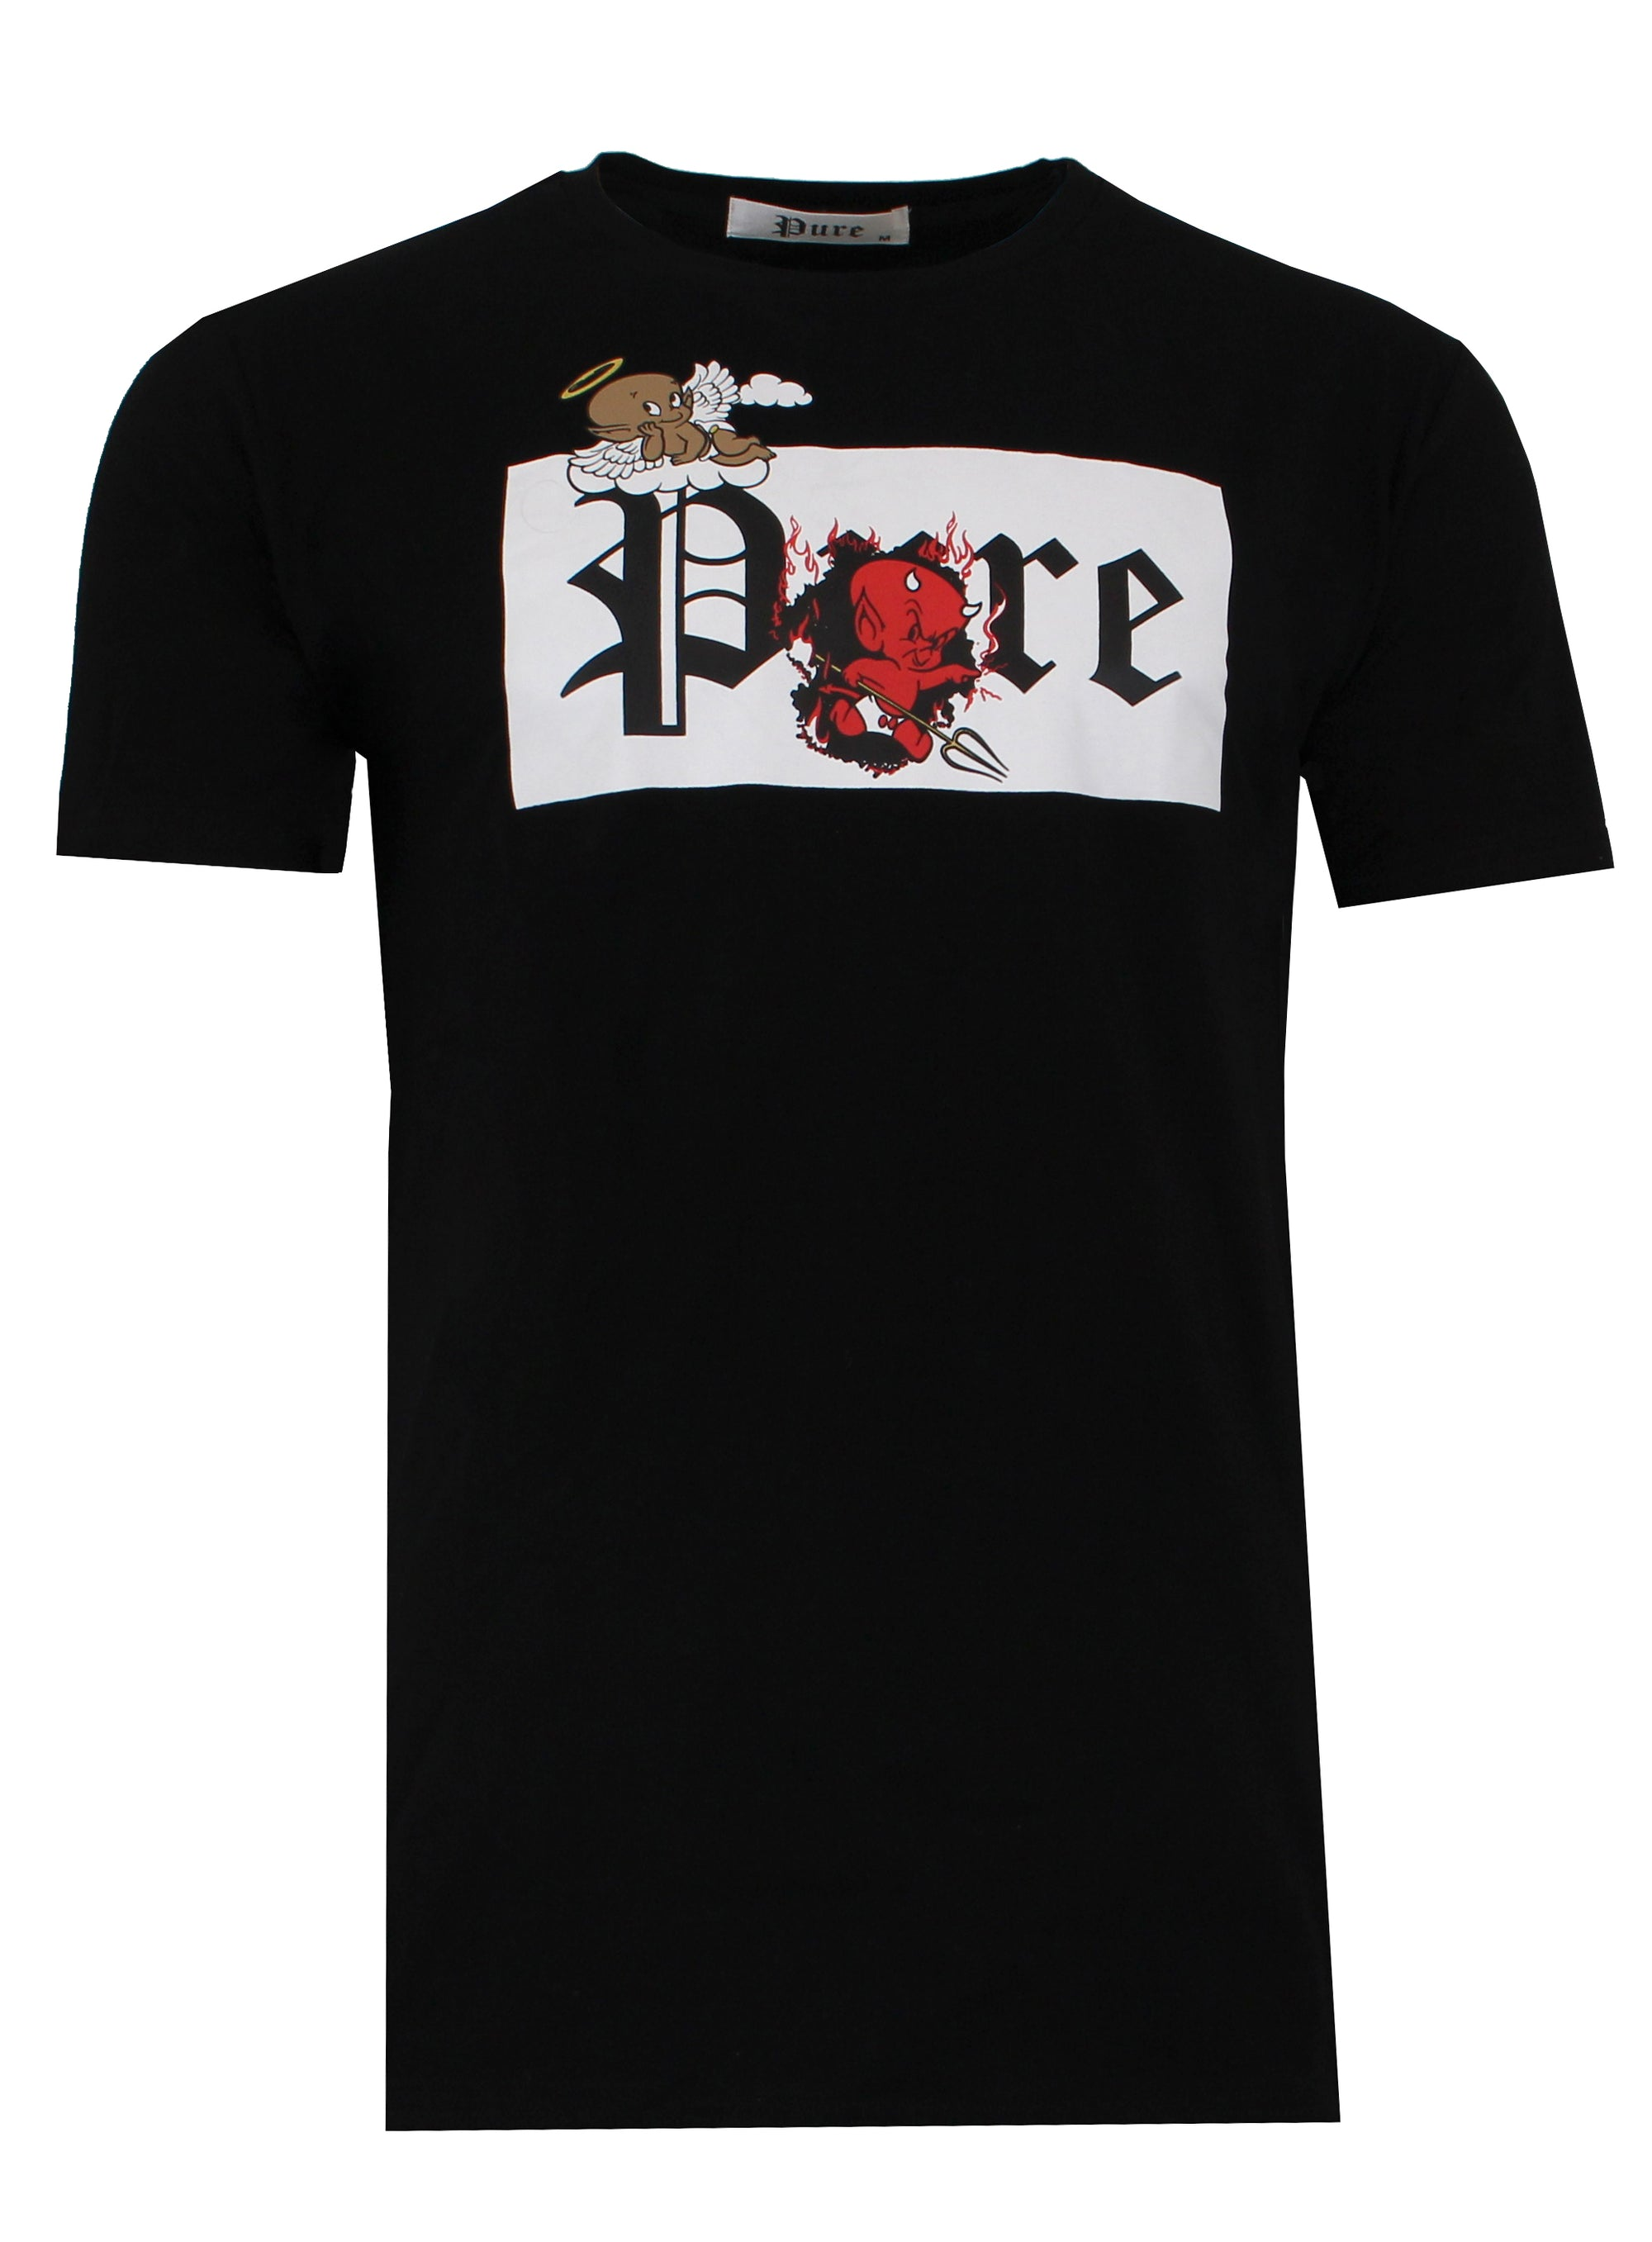 New 2021 Pure Tee with White Block Devil and Angel